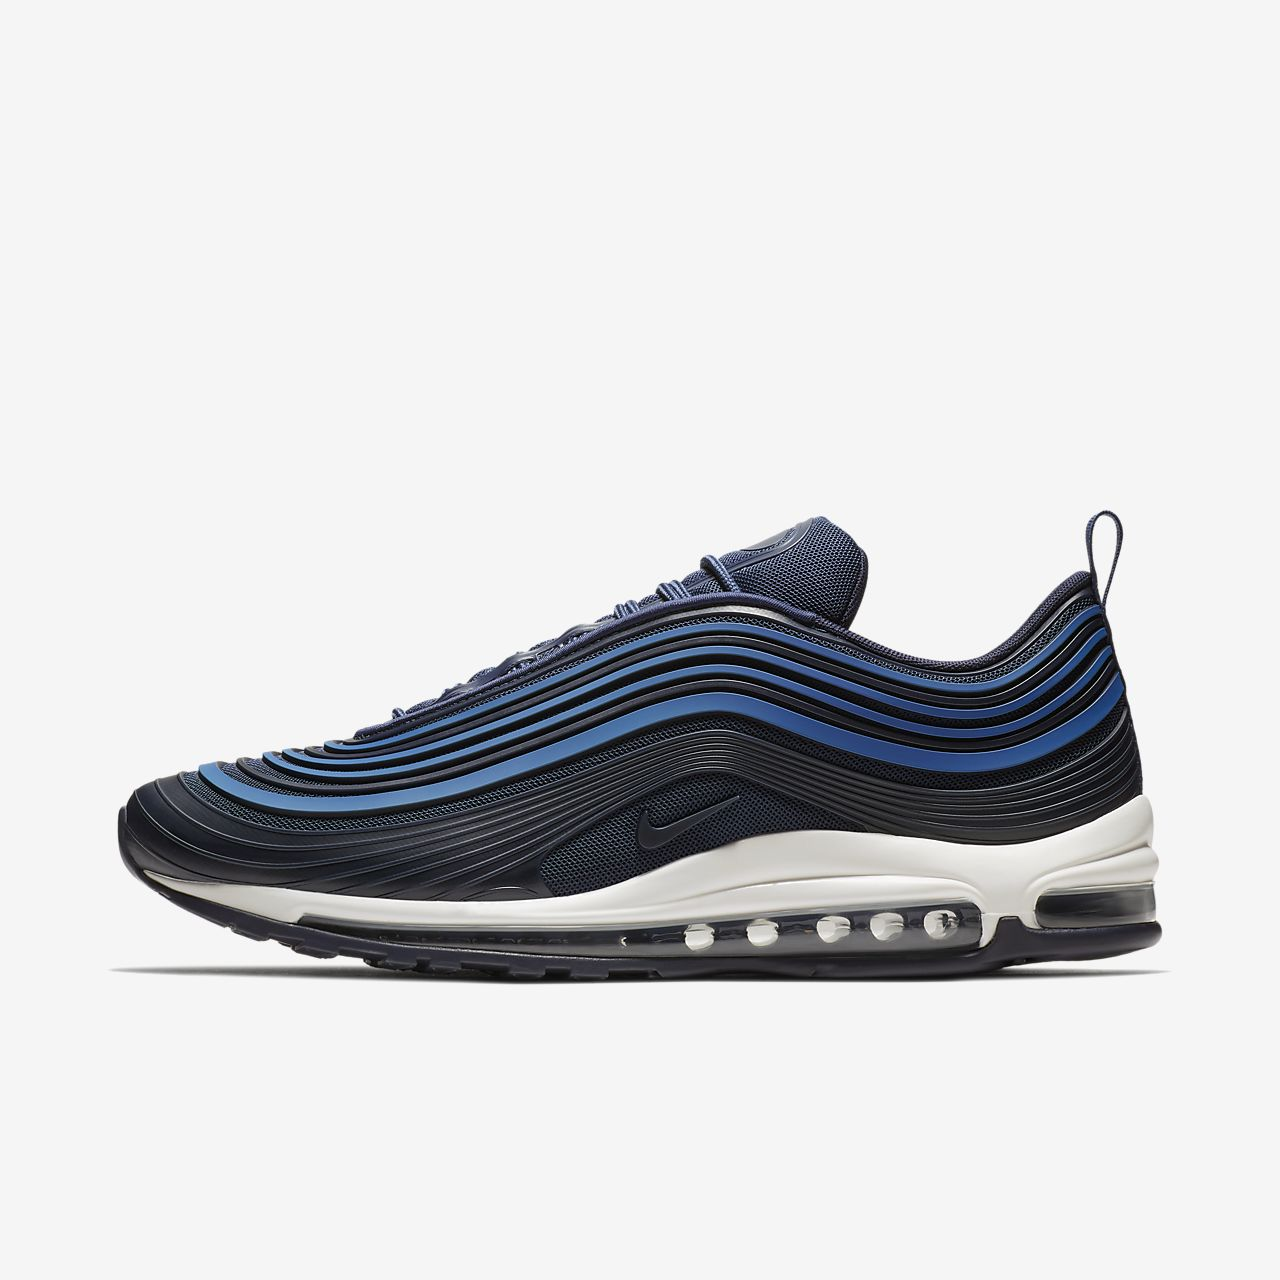 Nike Air Max 97 x Off White US 6,5 in Bayern Ergoldsbach